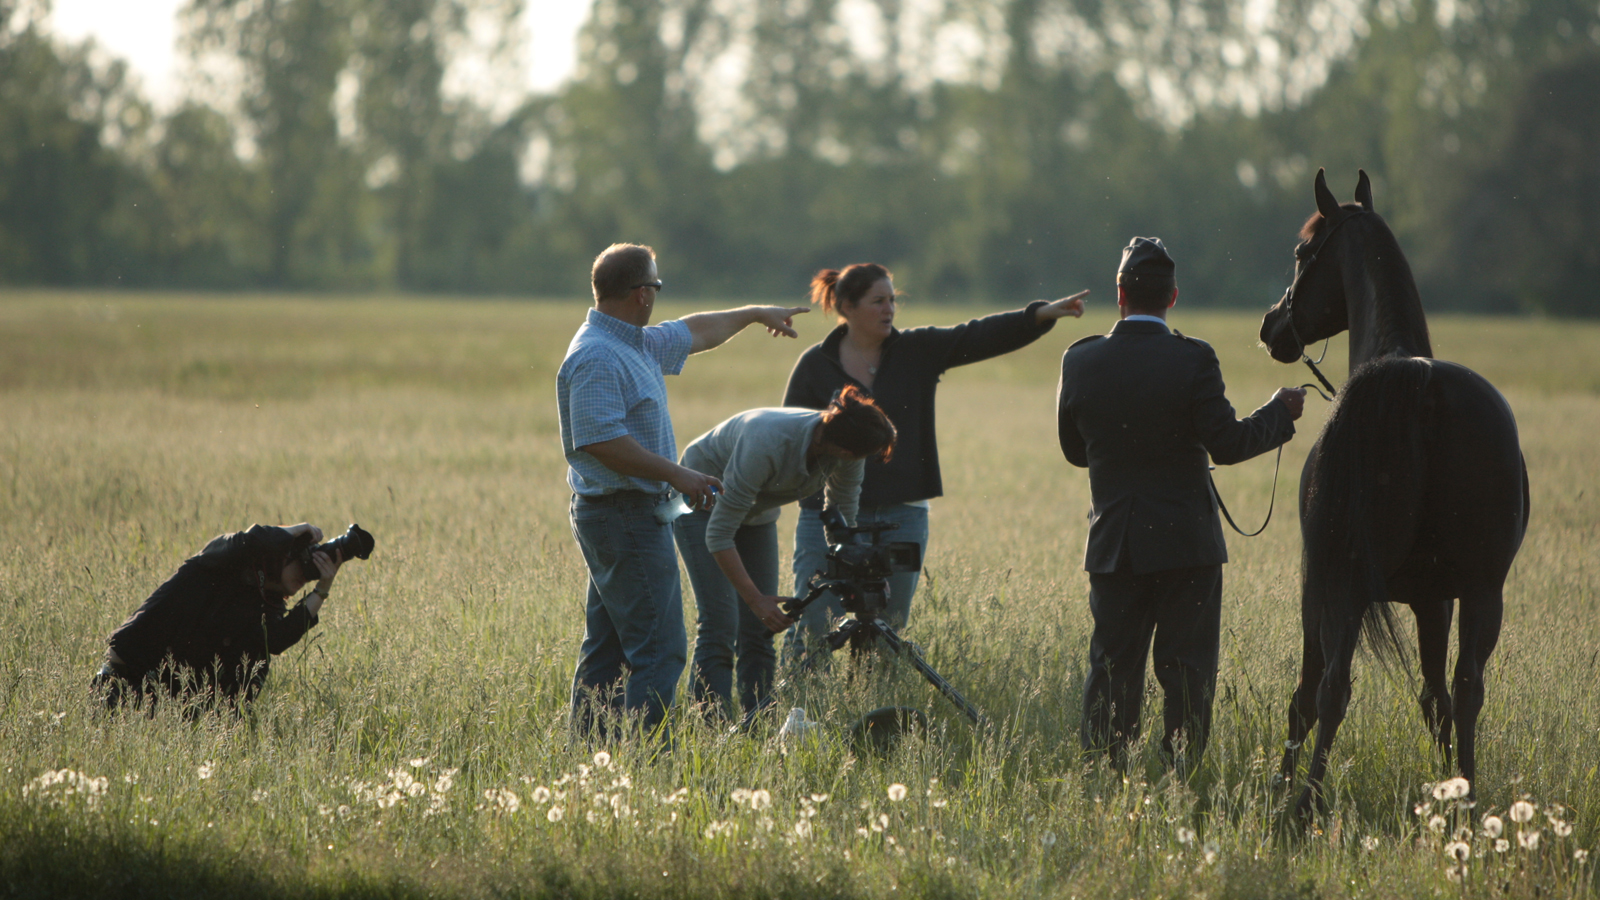 The team at work in Poland